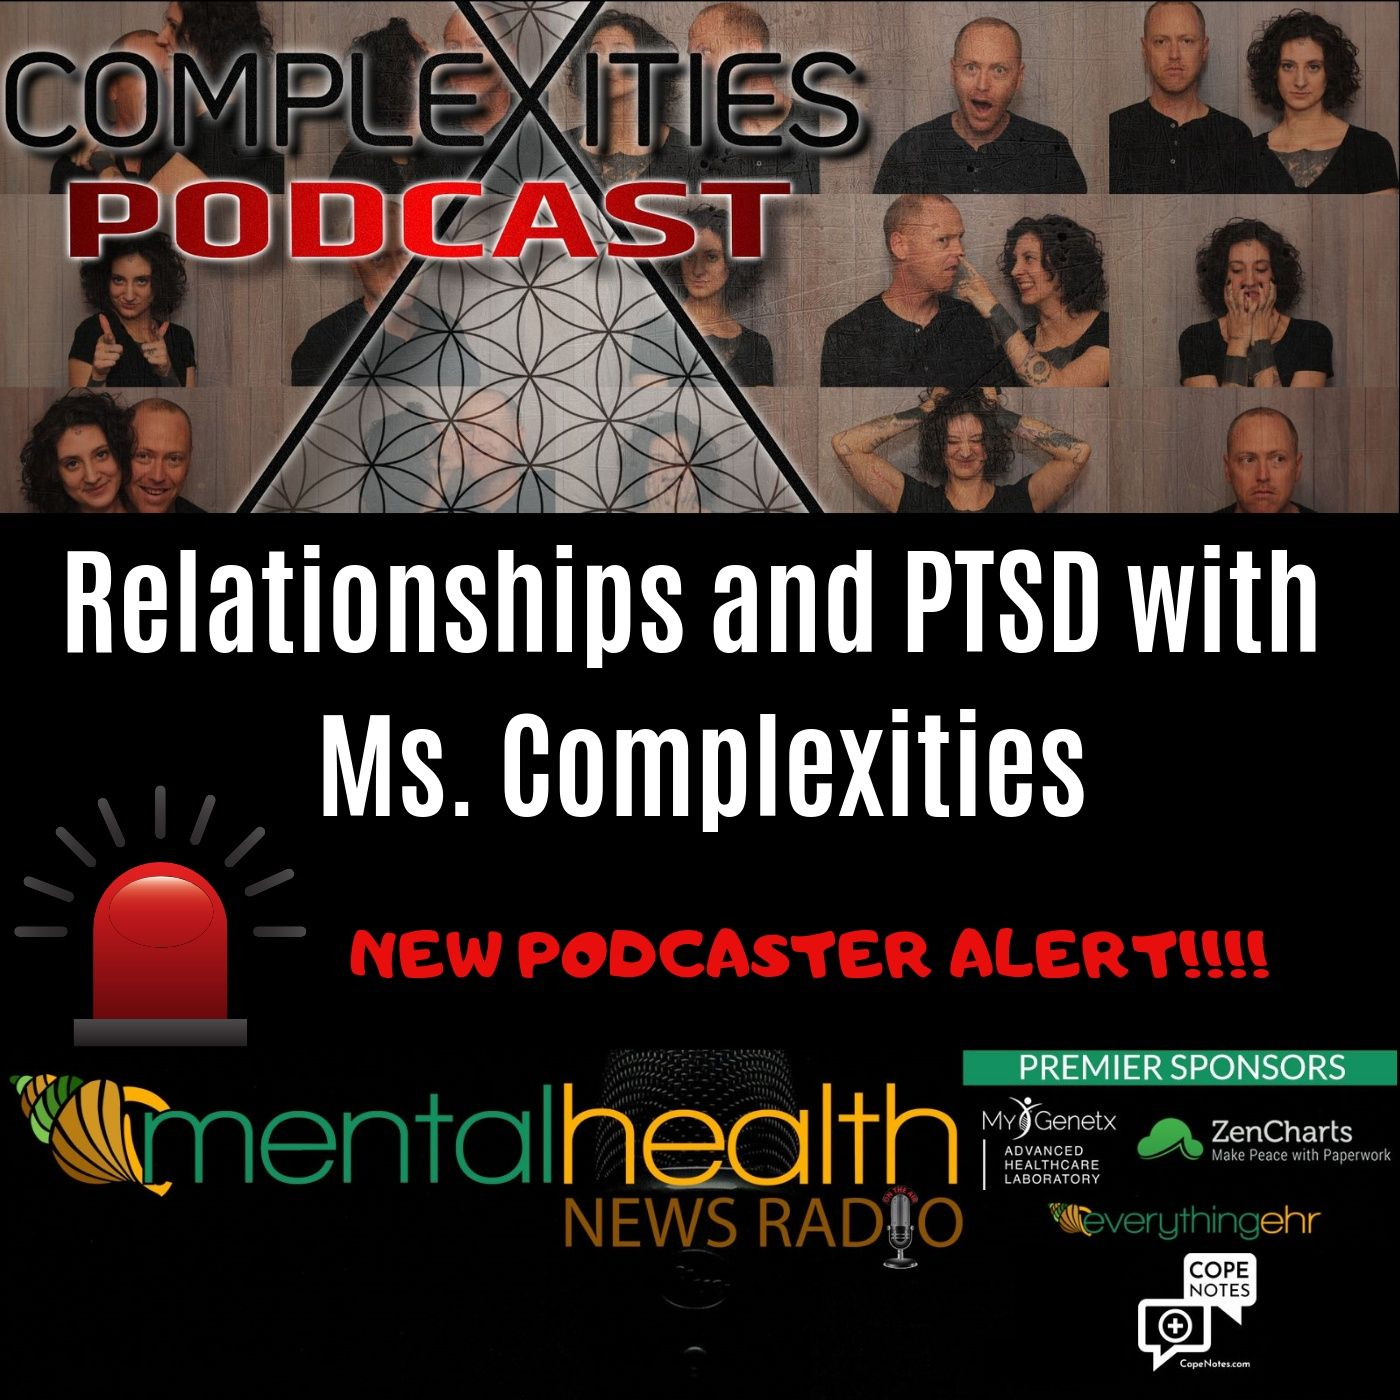 Mental Health News Radio - Relationships and PTSD with Ms. Complexities